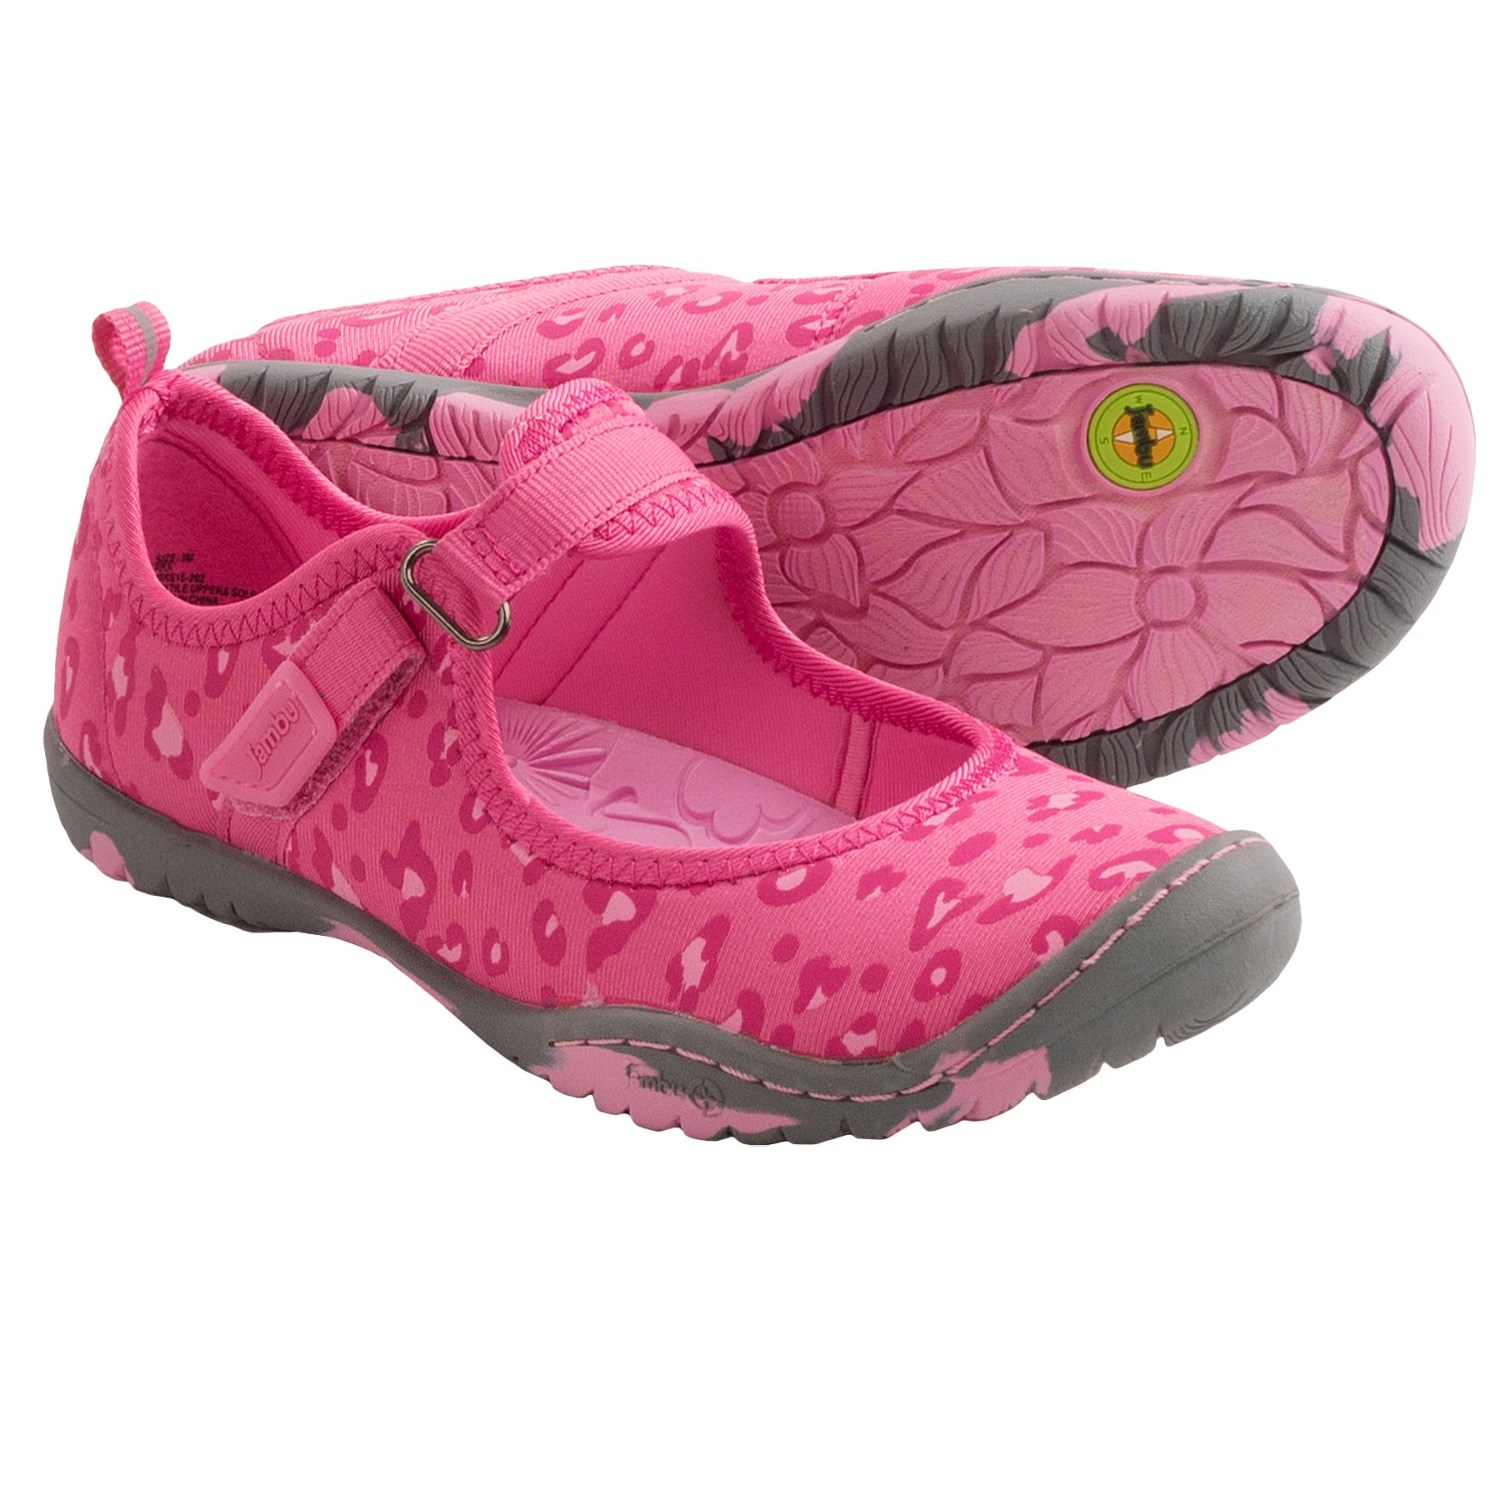 Jambu Ara Water Shoes For Little and Big Kids 9320T